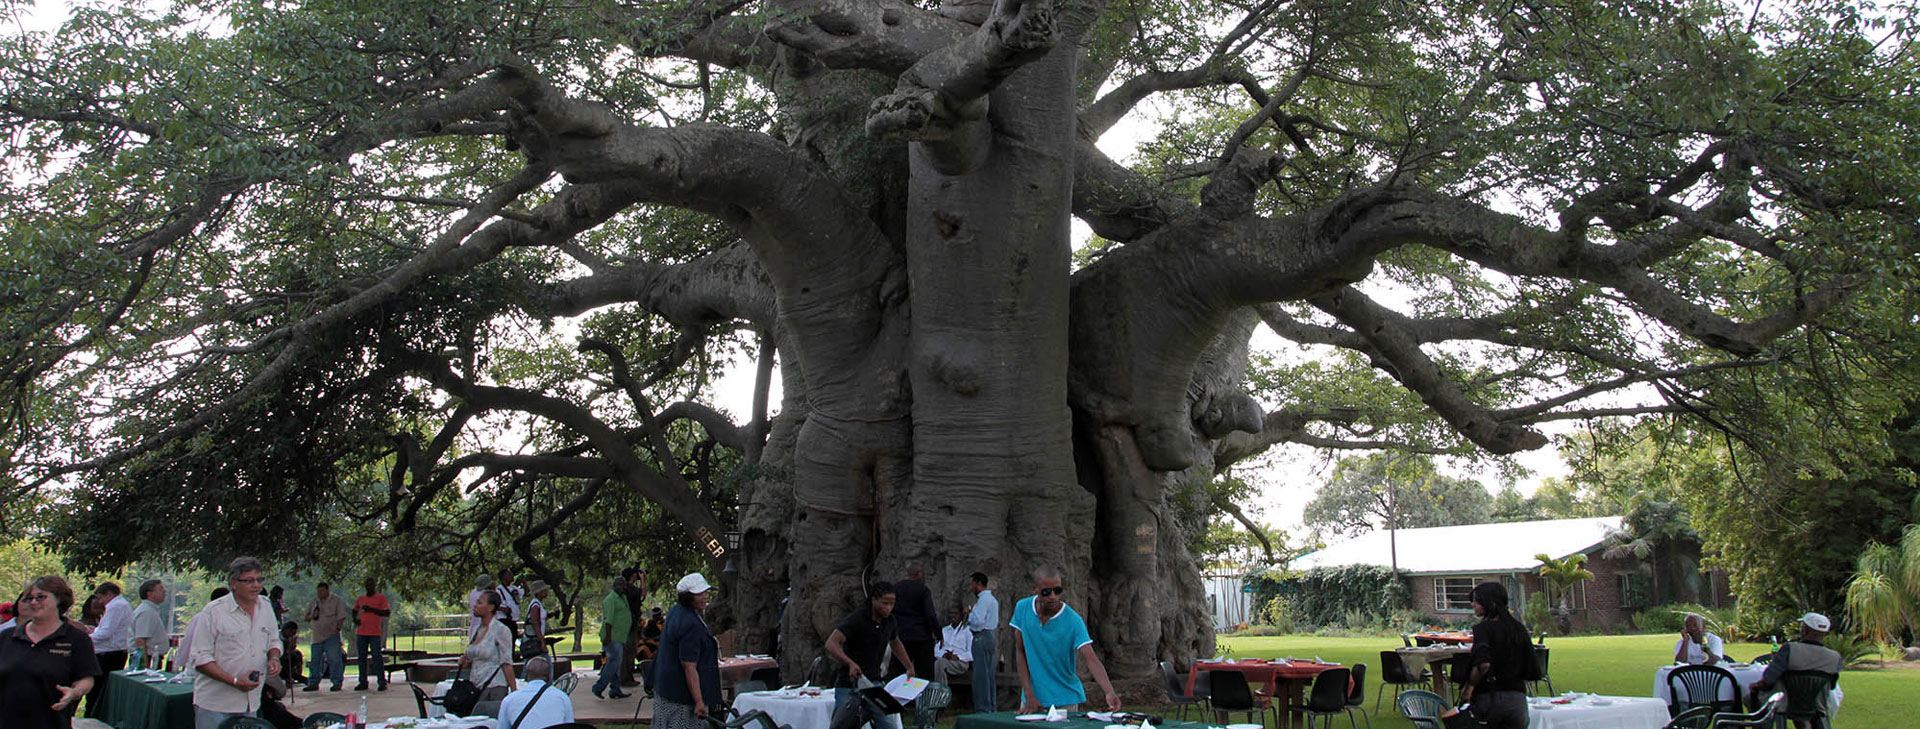 The Sunland Baobab, near the sub-tropical town of Tzaneen, is the country's largest baobab in South Africa